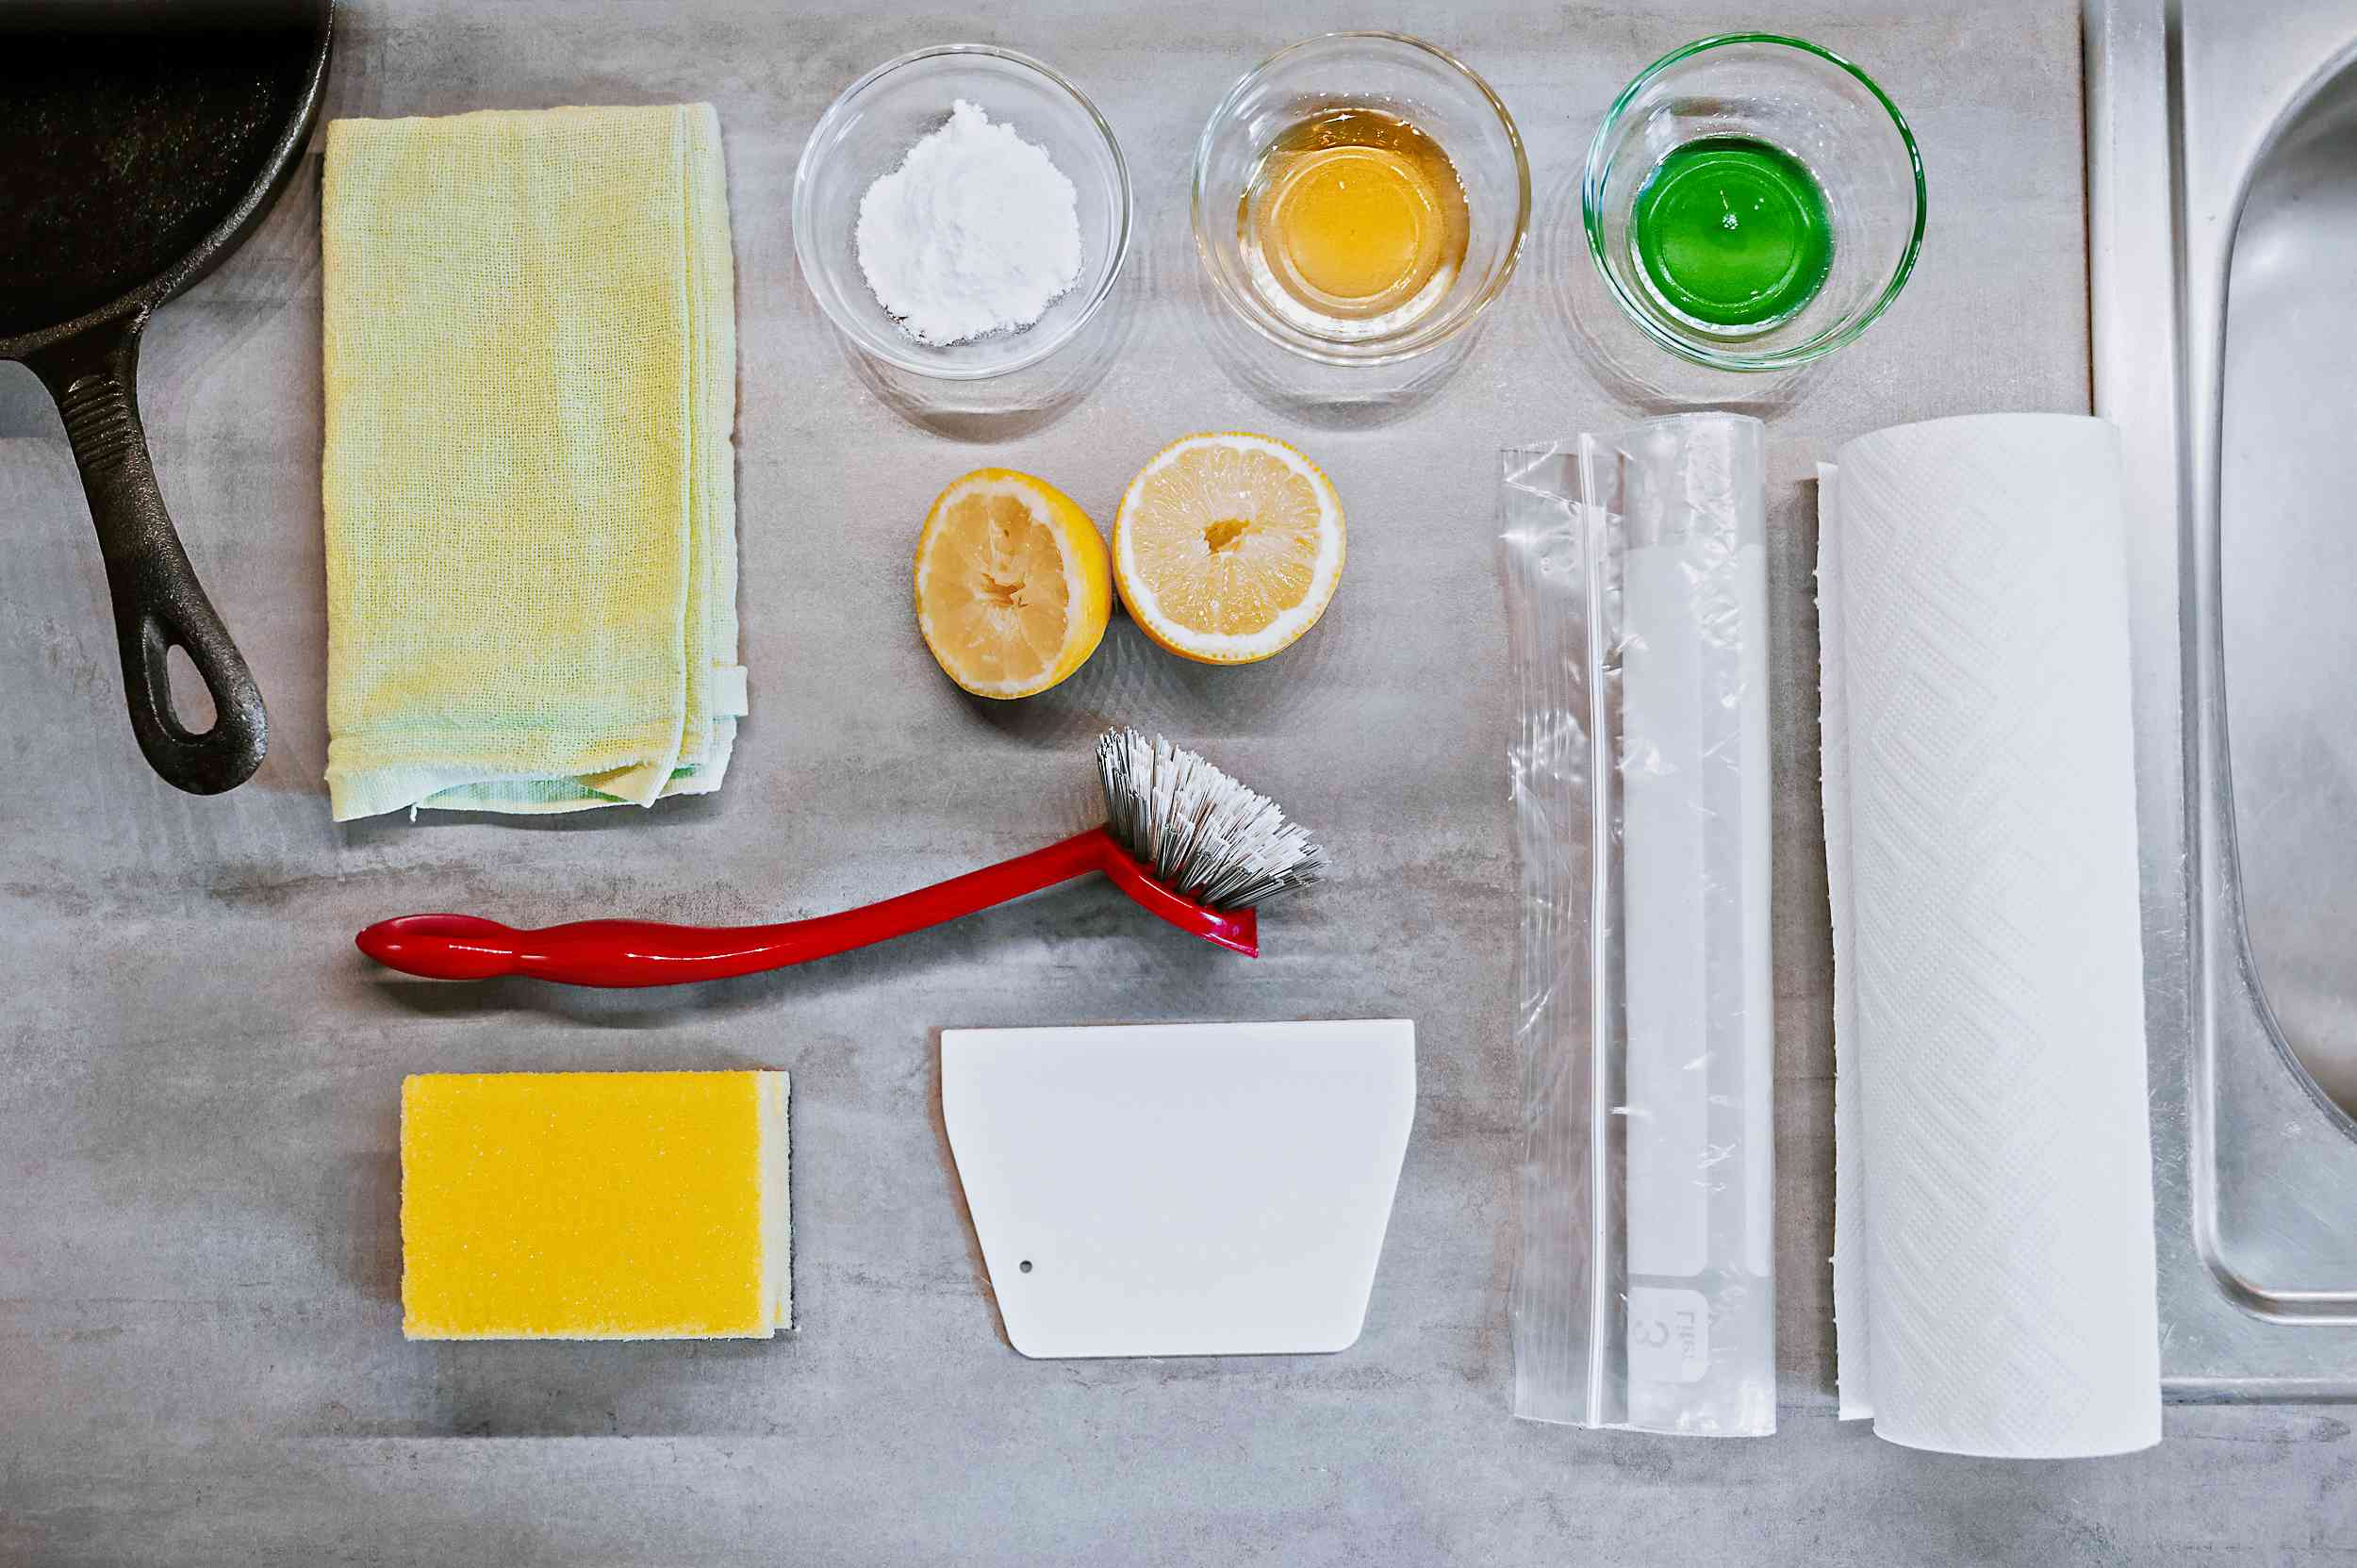 Materials and tools to clean a cast iron griddle pan